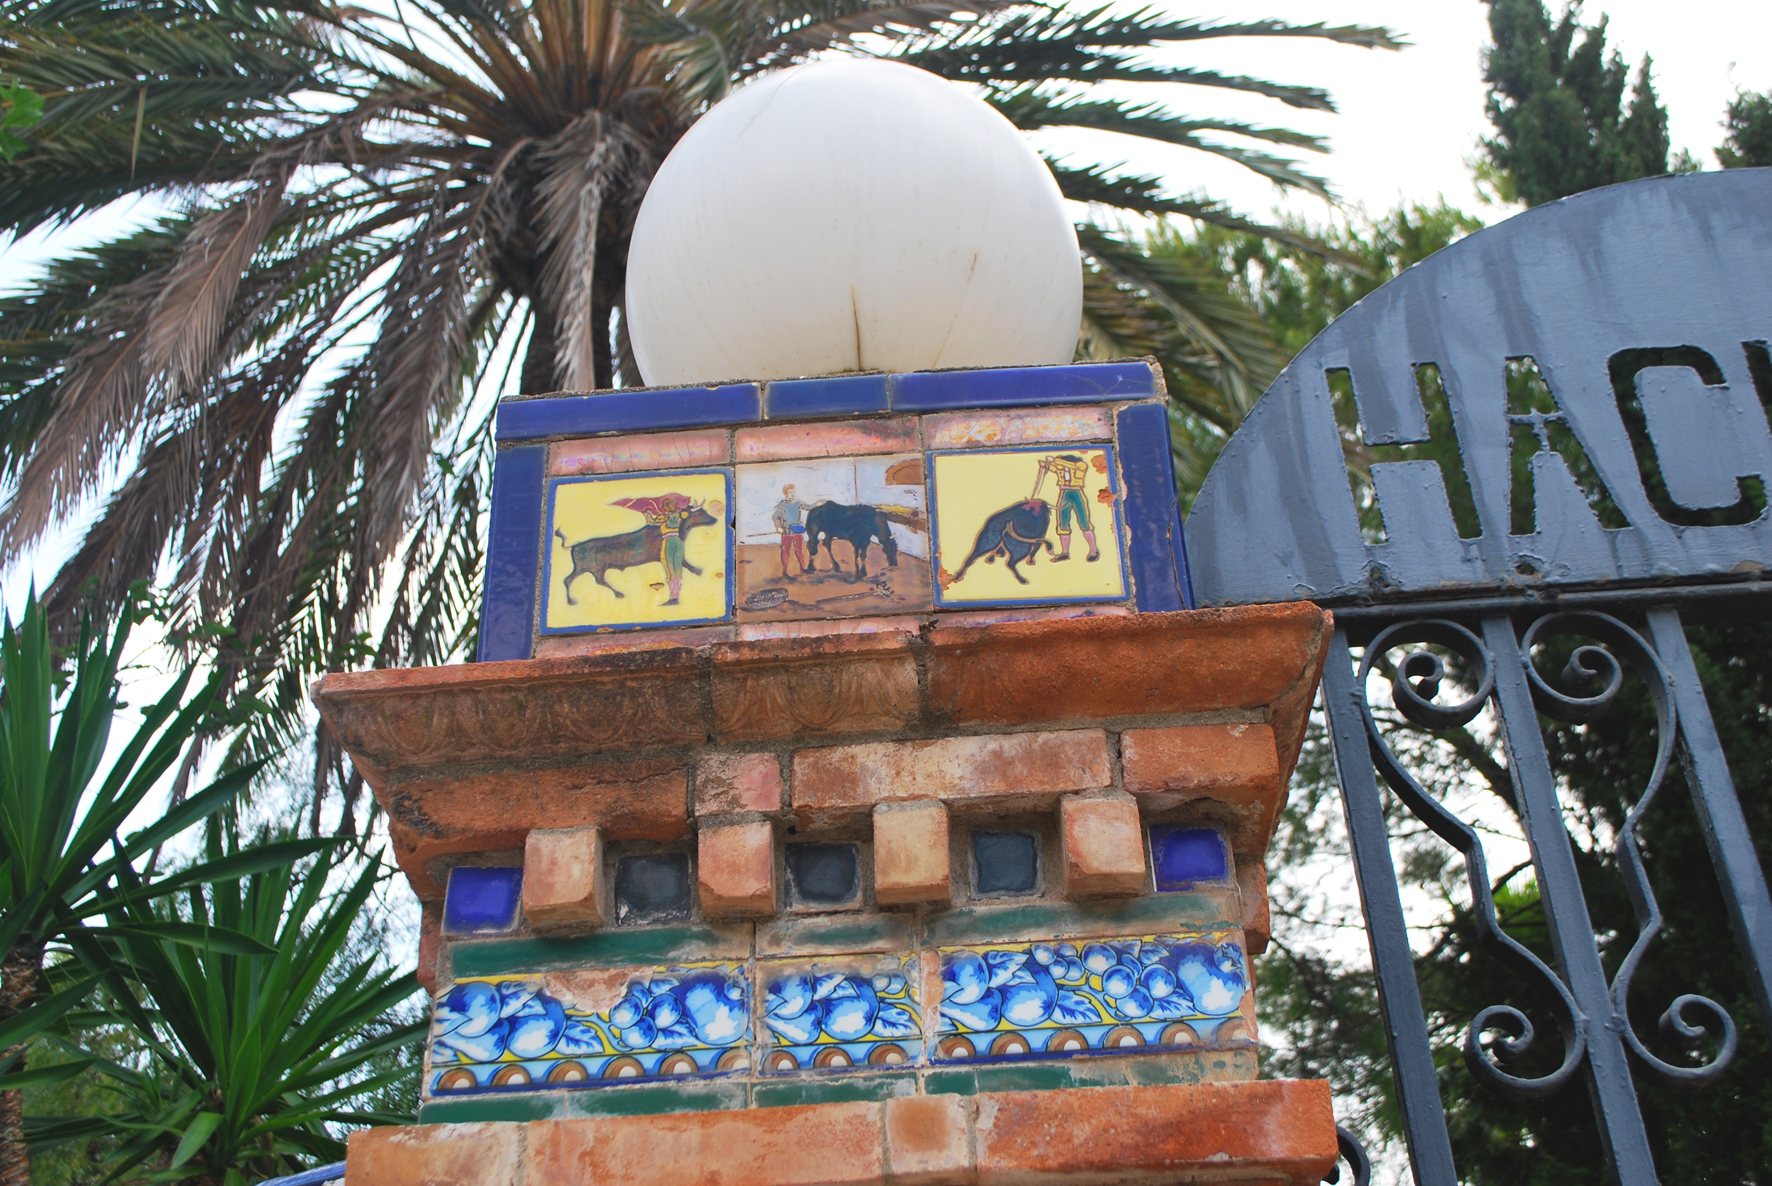 The tiles on the entrance gate pillars tell a story about bull fighting.